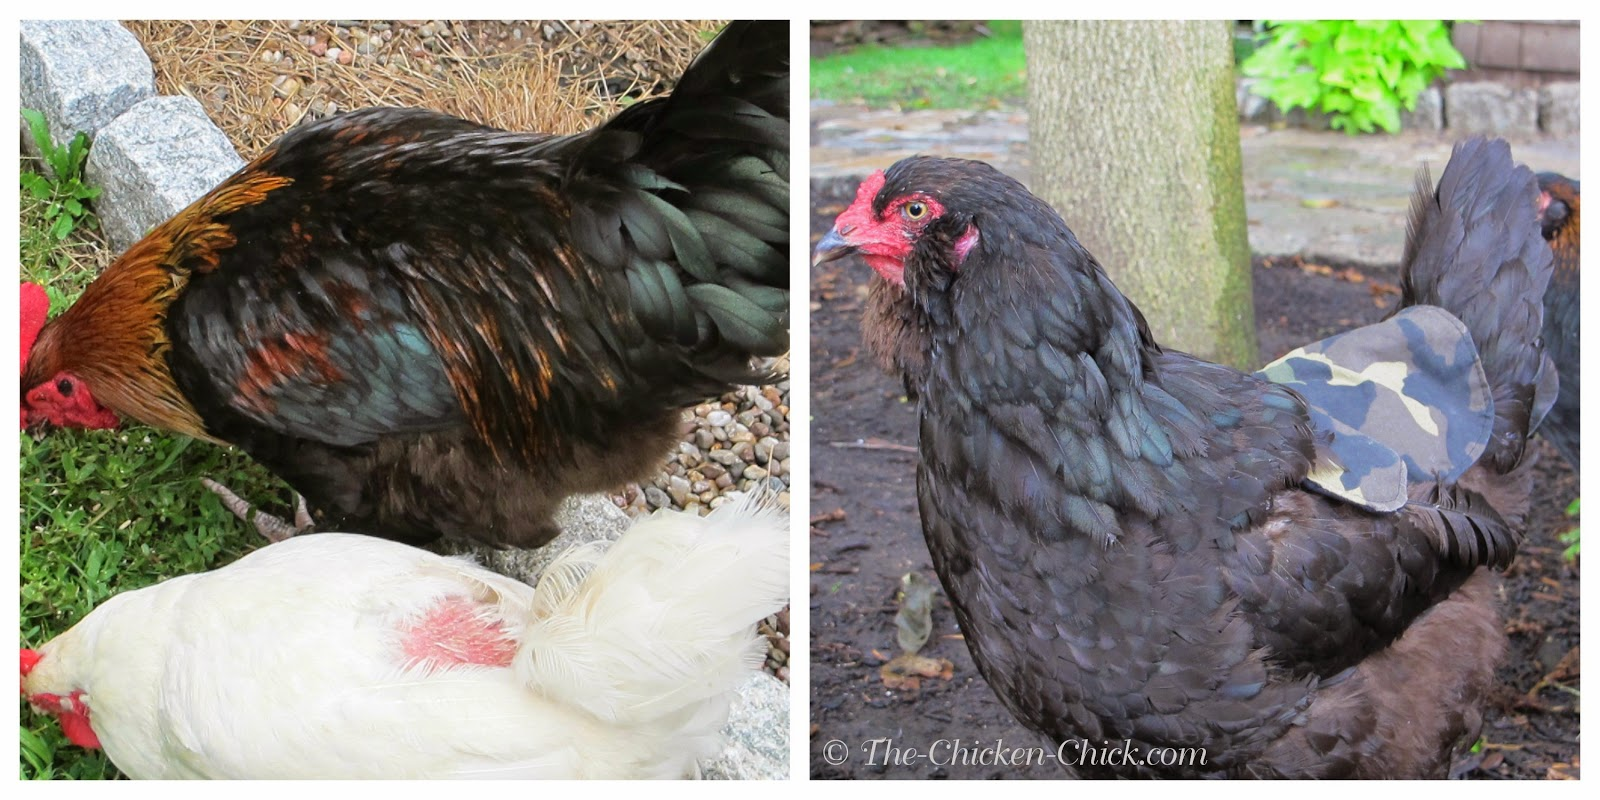 Feather loss on hen's back due to rooster treading & hen apron being modeled.